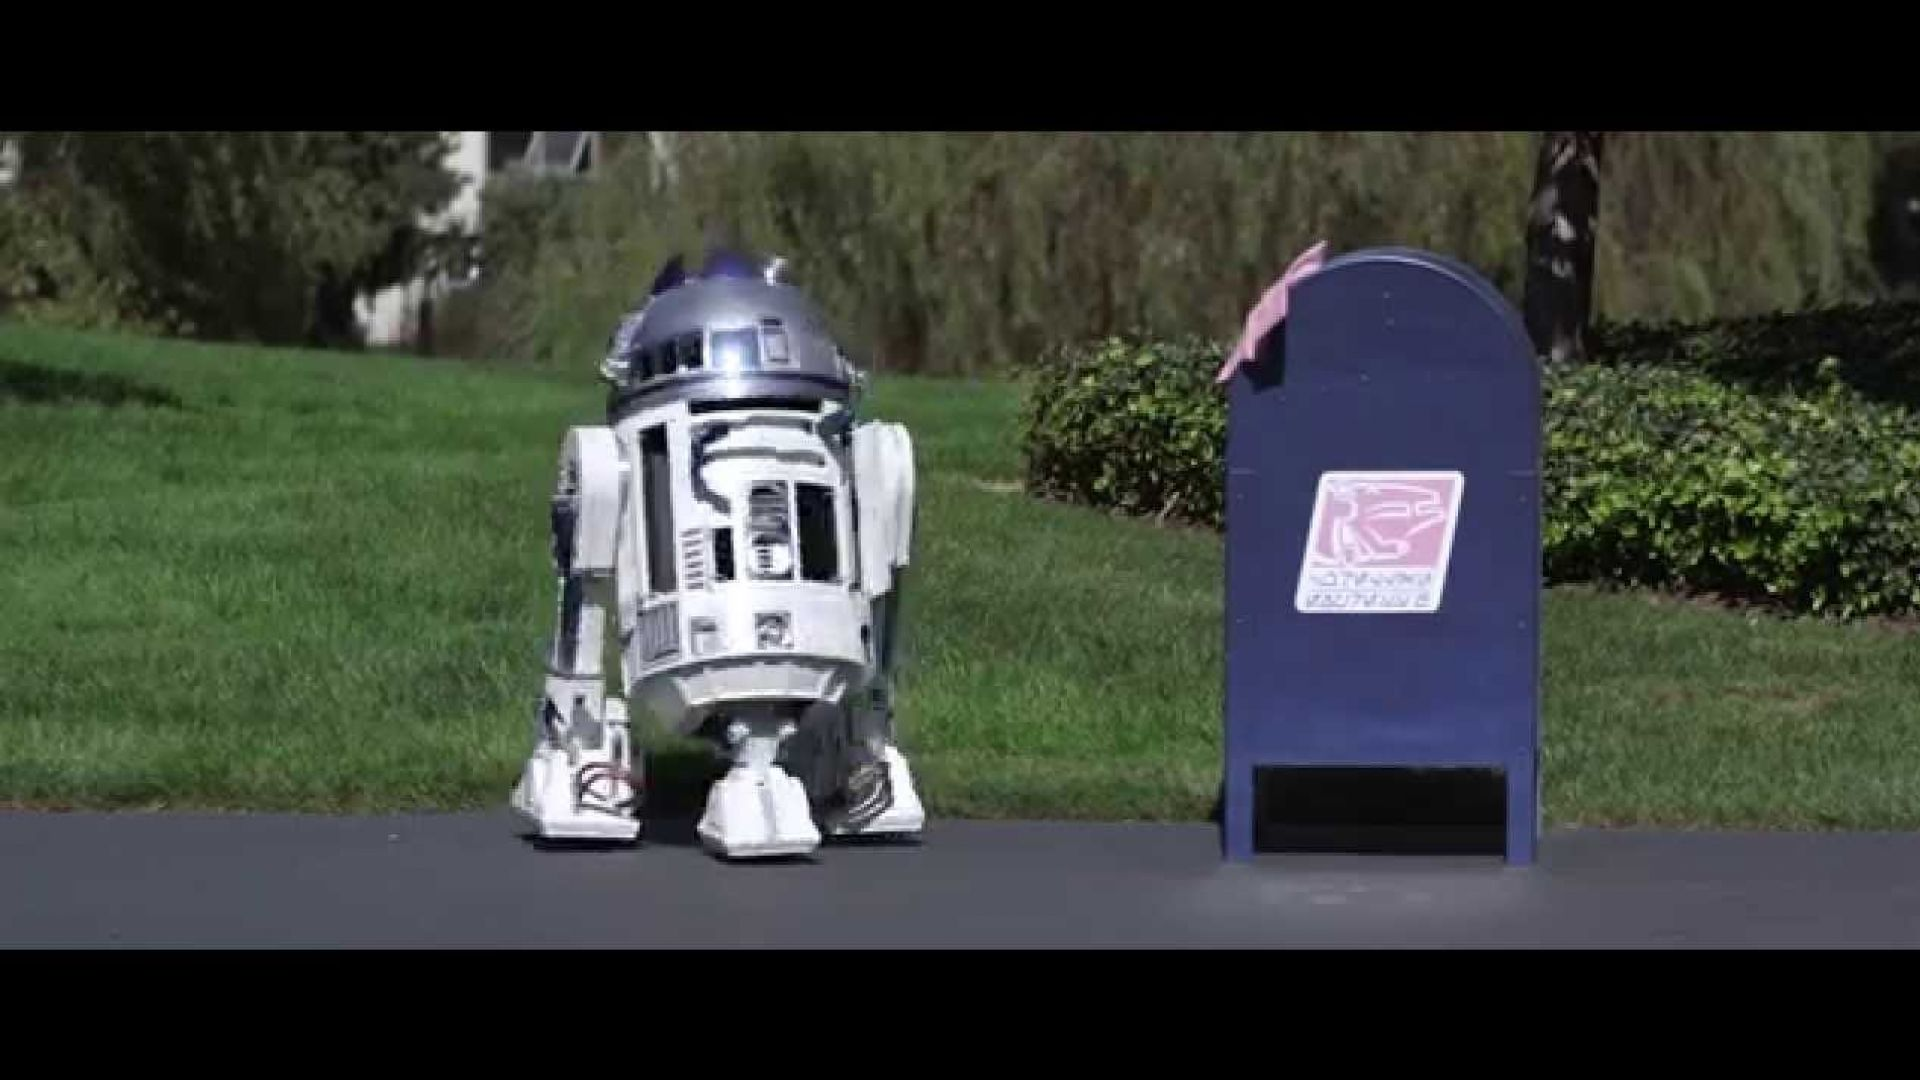 Watch R2-D2 fall in love in this charming little short